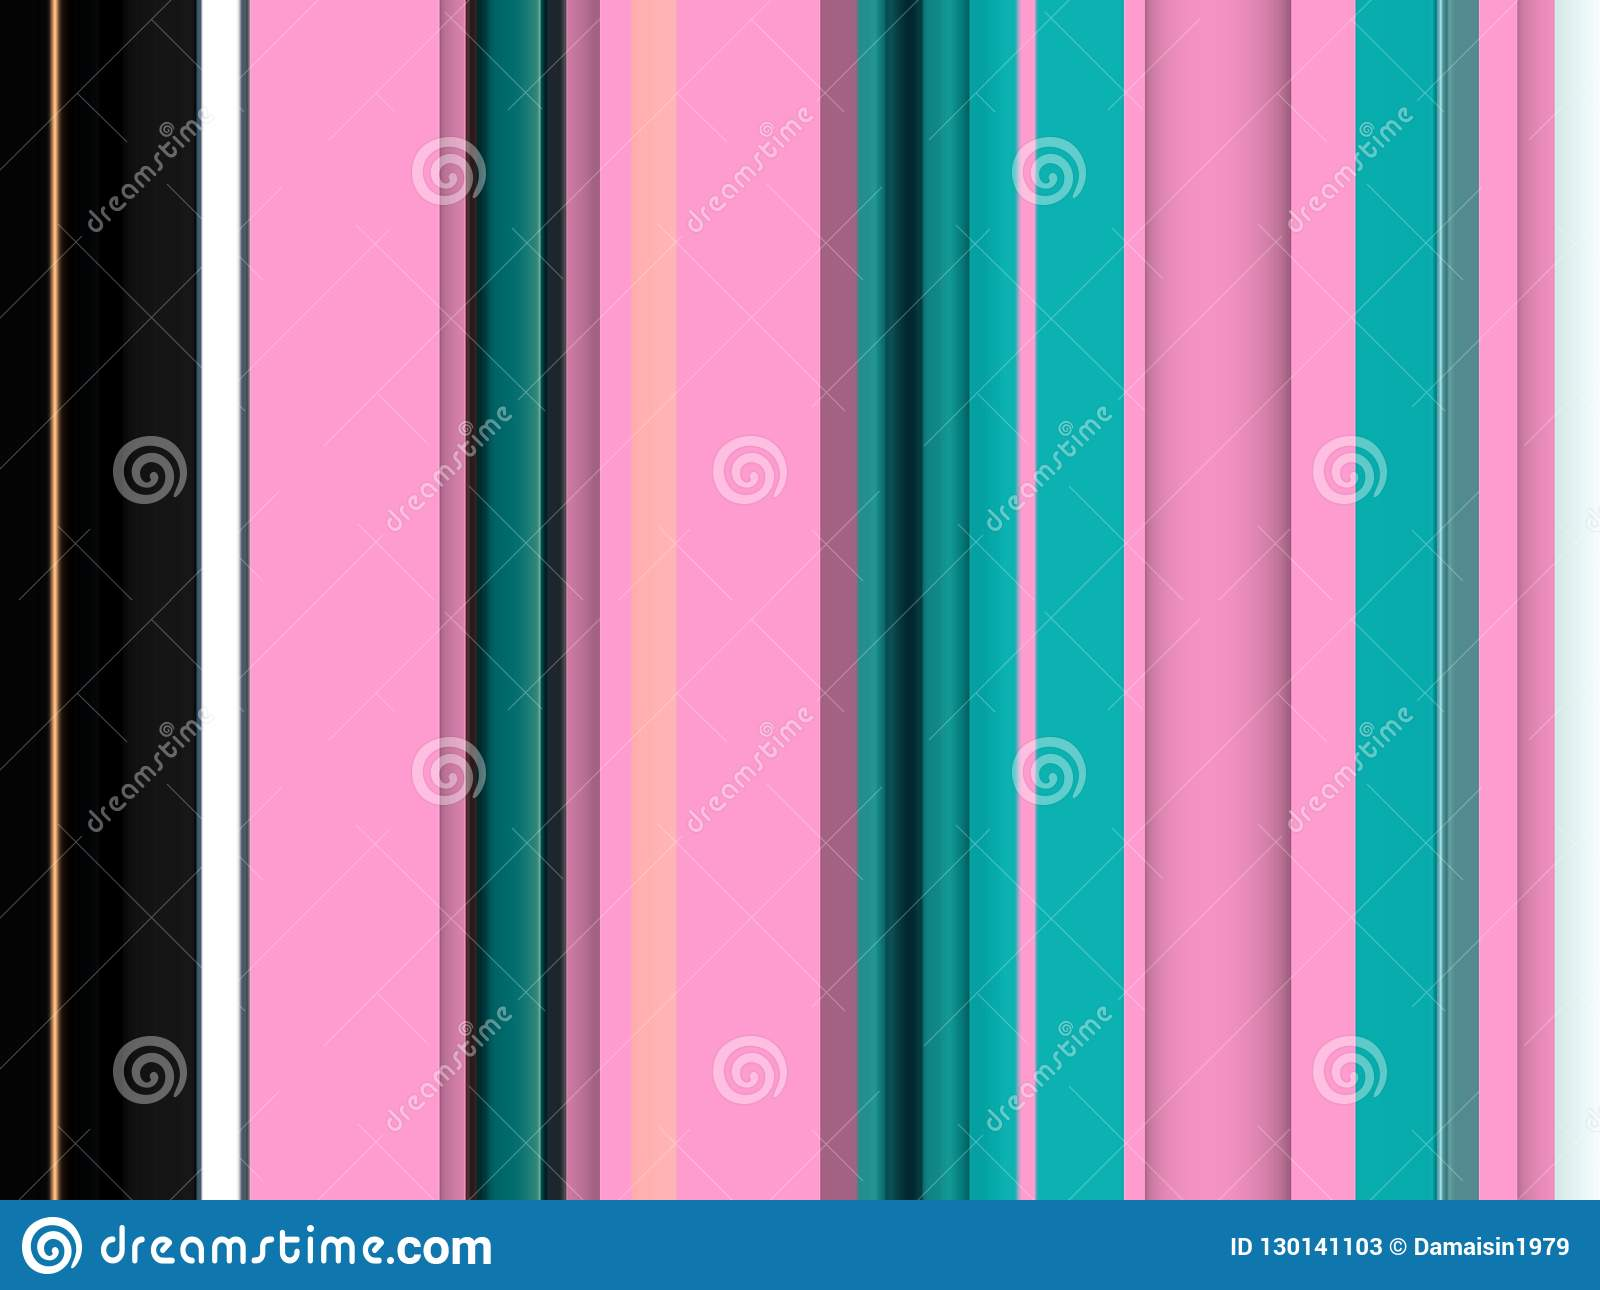 Pink black white lines background, abstract colorful geometries